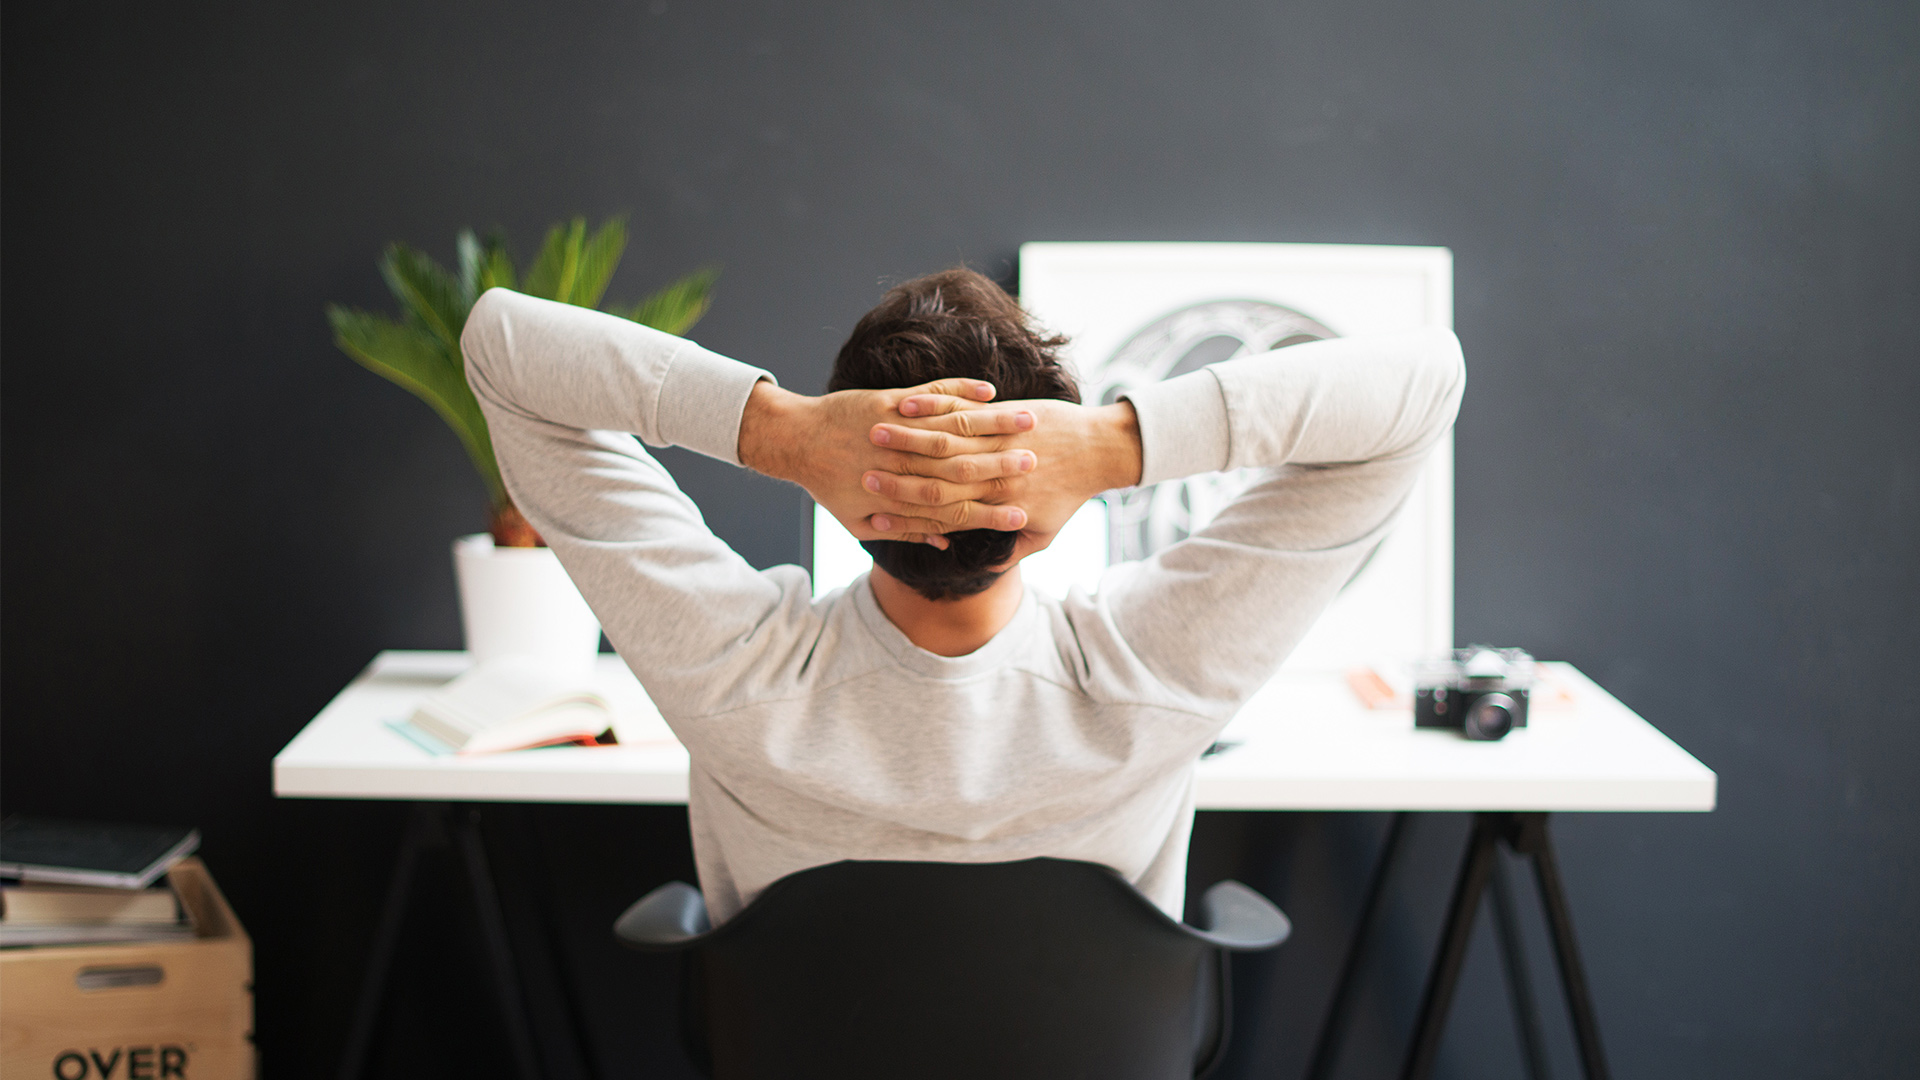 Relaxed arms on head at desk